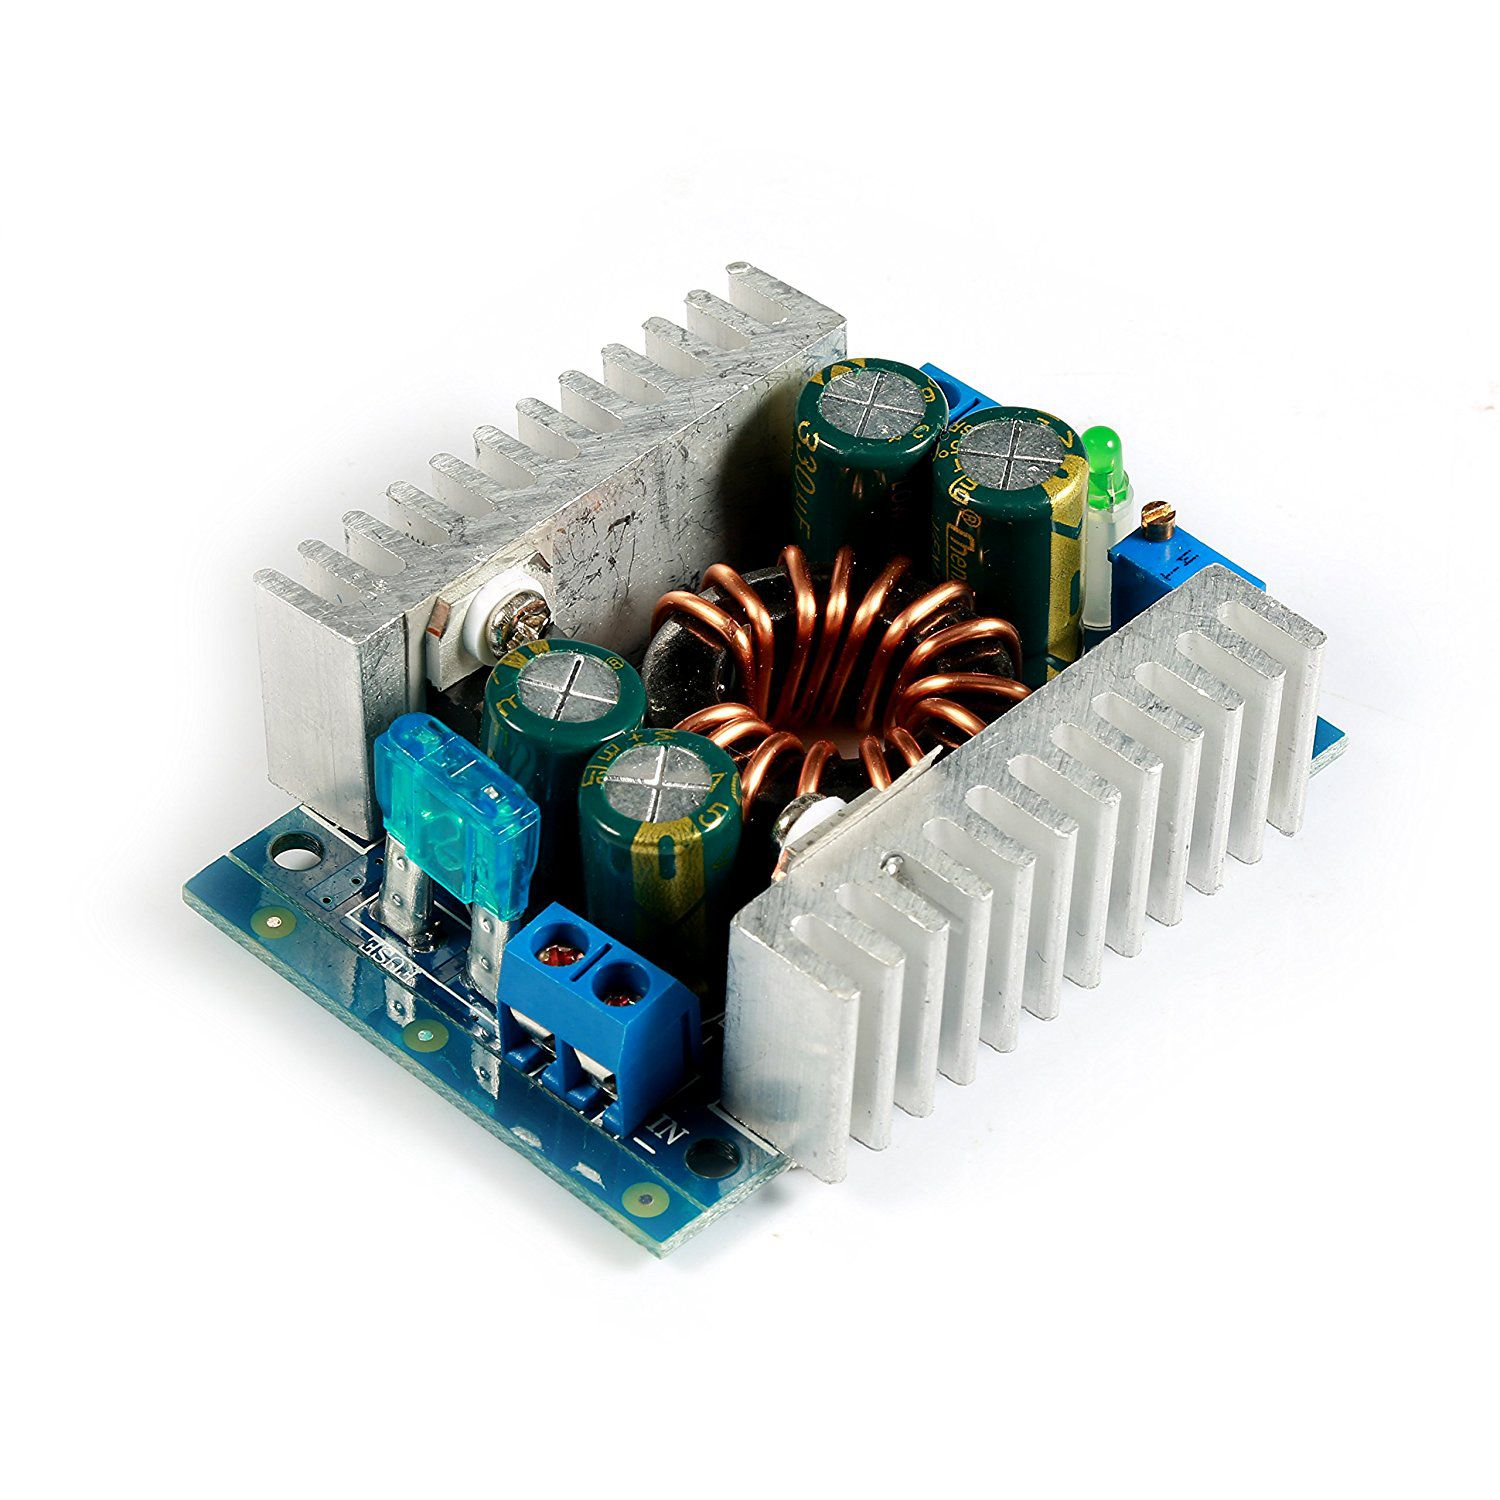 Hot Sale 150W DC Boost Converter Power <font><b>Transformer</b></font> Module 8-<font><b>32V</b></font> to 9-46V 12/24V Step-up Volt Inverter Controller Stabilizer fo image